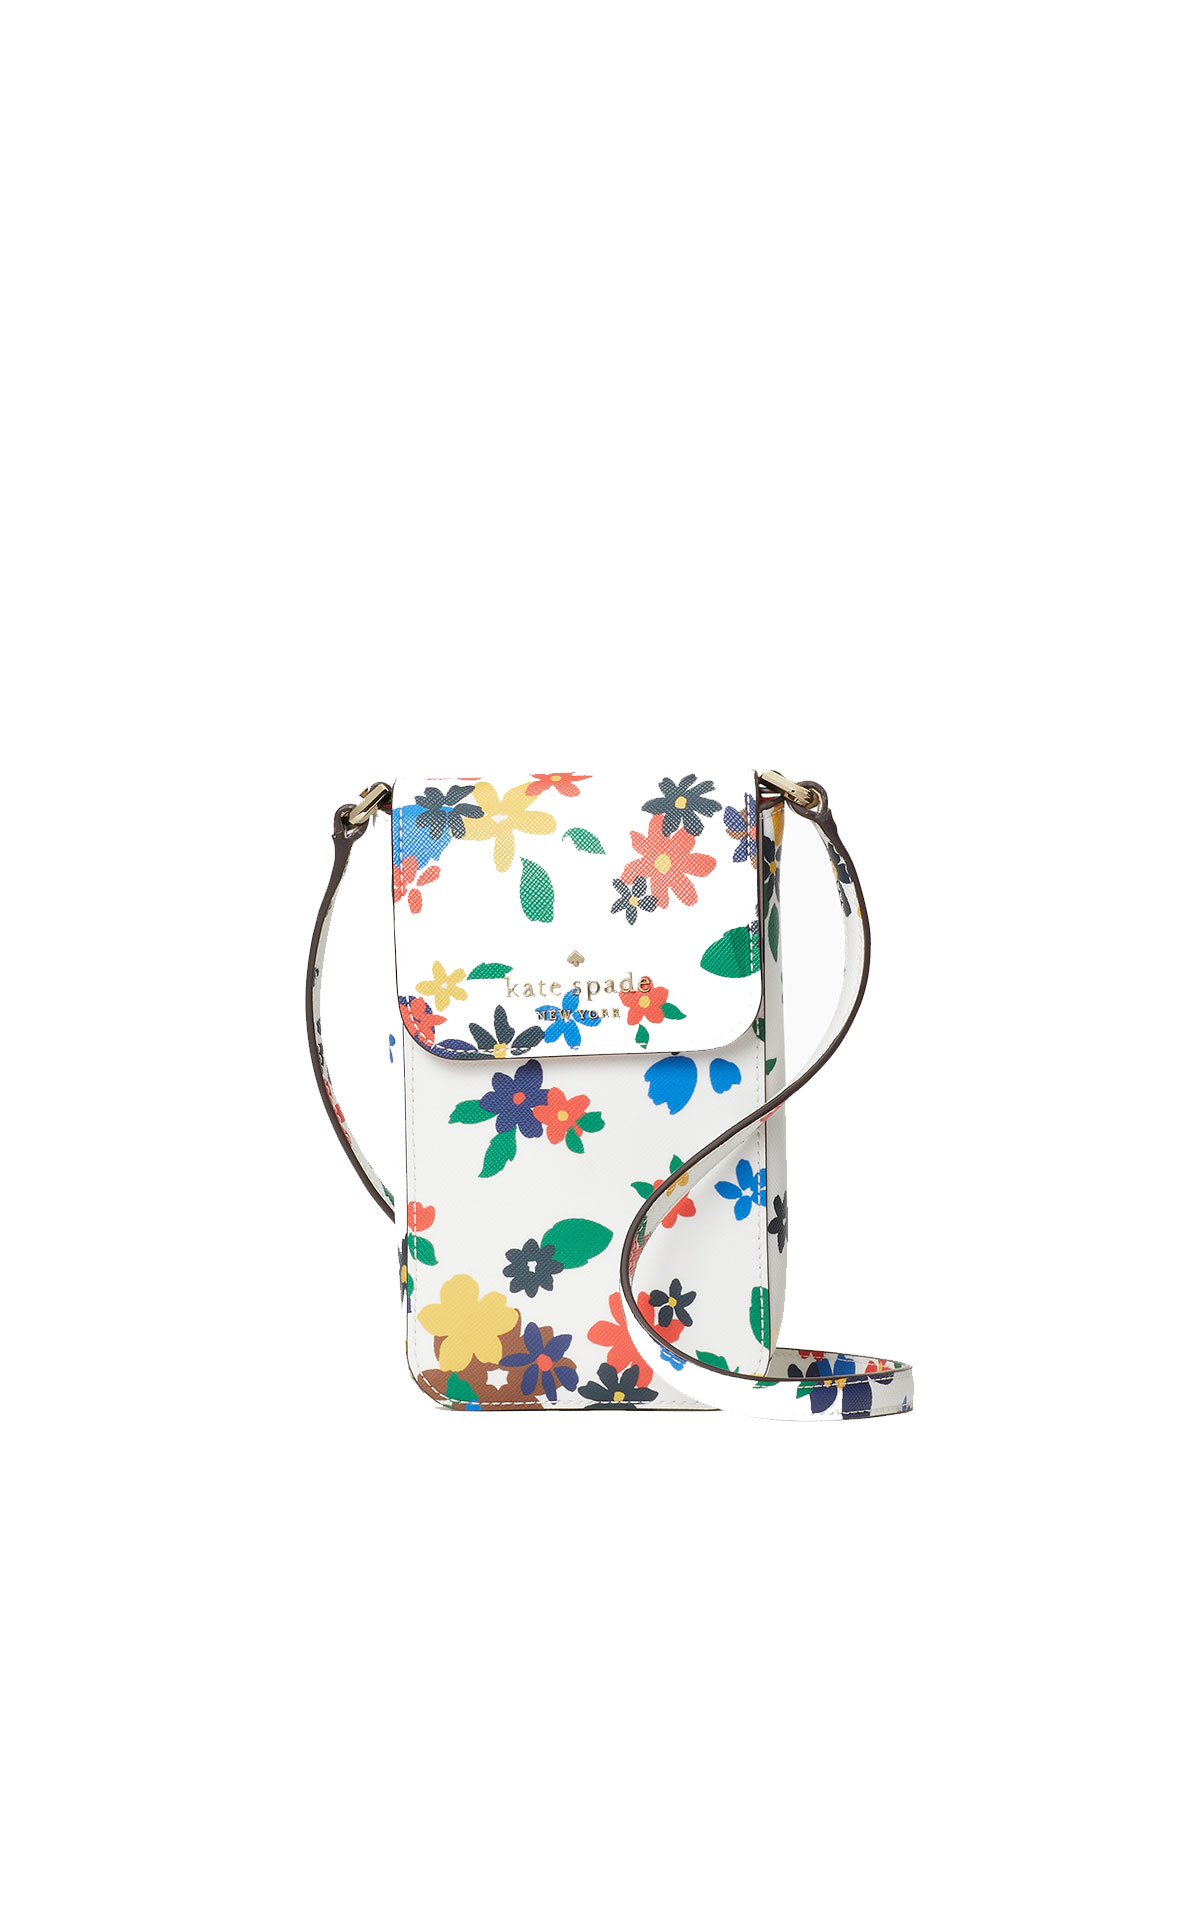 kate spade new york Staci sailing floral flap phone crossbody from Bicester Village